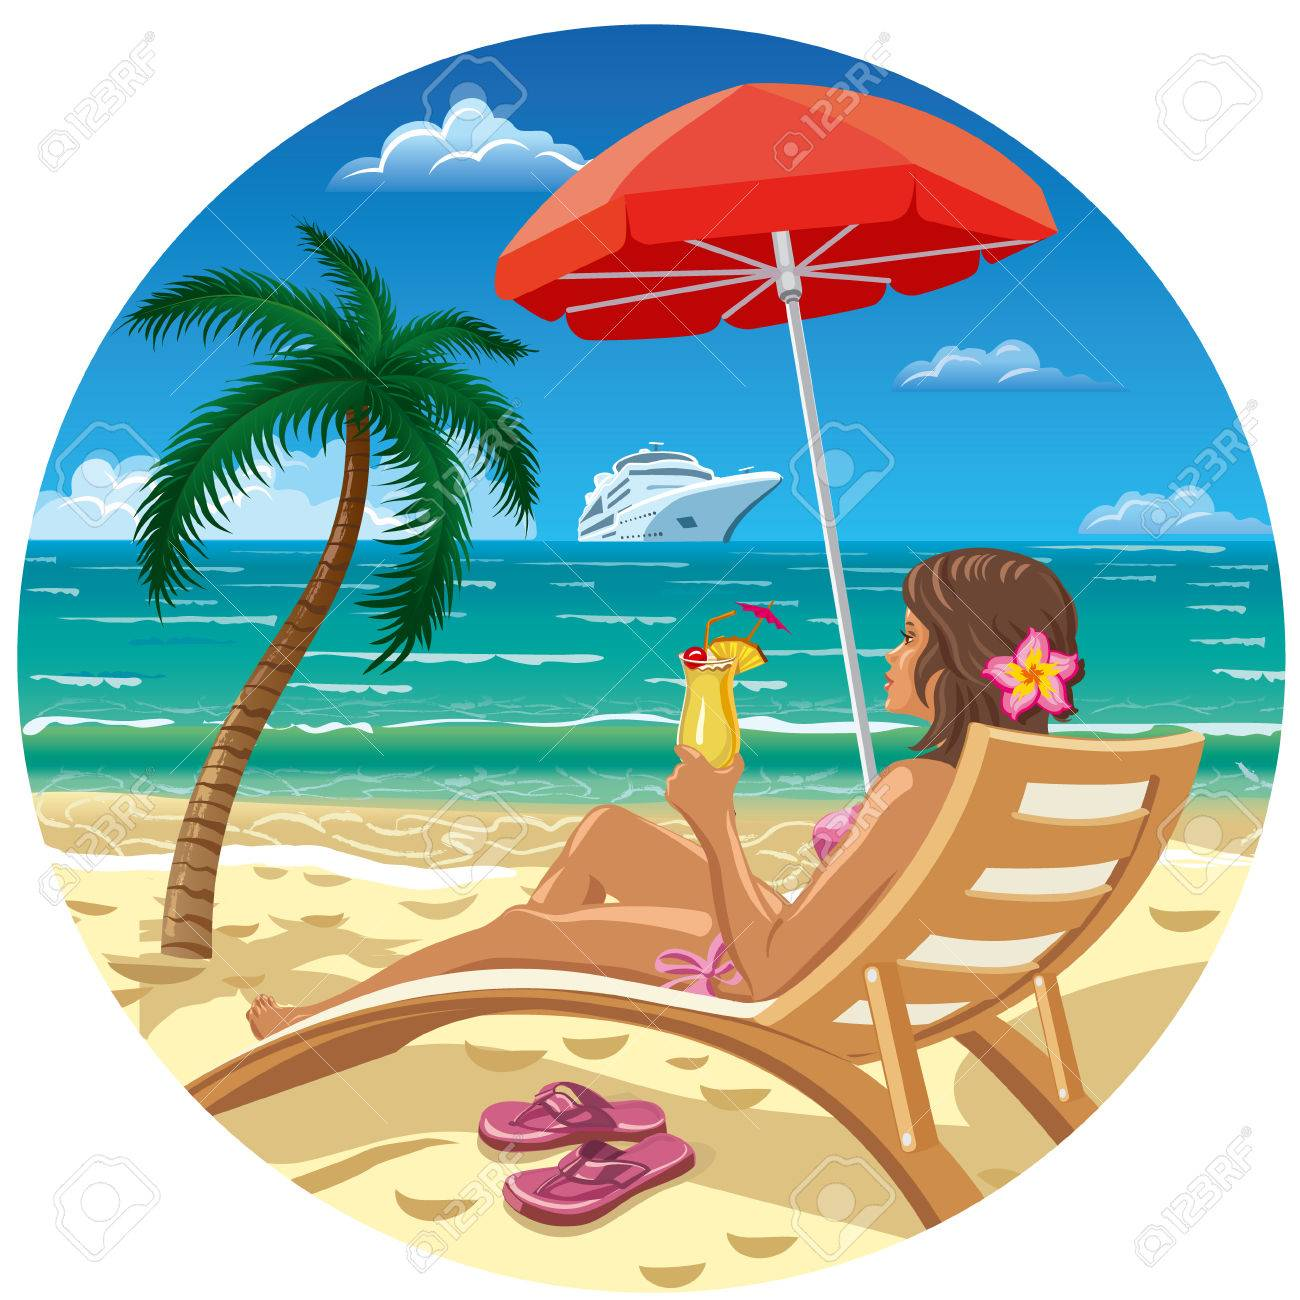 Free Lounge Clipart beach vacation, Download Free Clip Art.